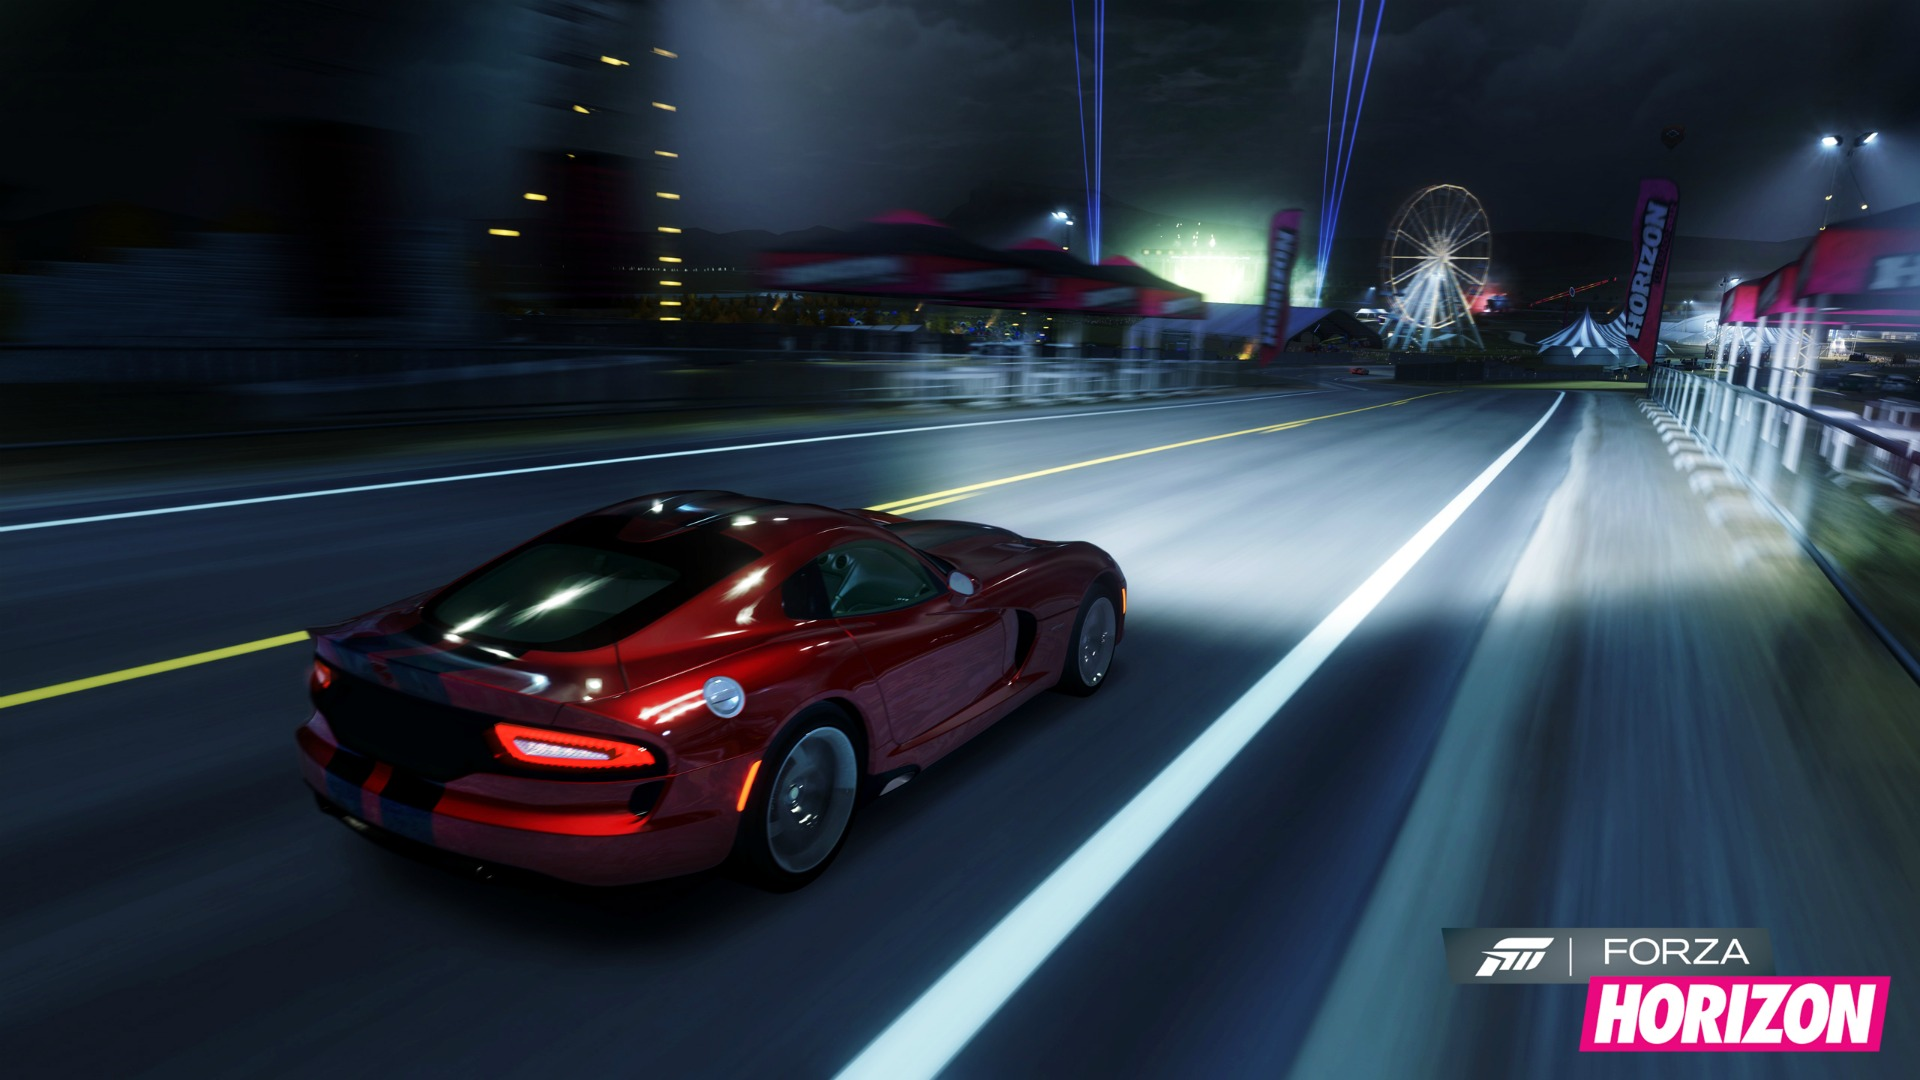 Forza-Horizon-2-for-Xbox-One-Coming-in-Fall-Has-Open-World-Report